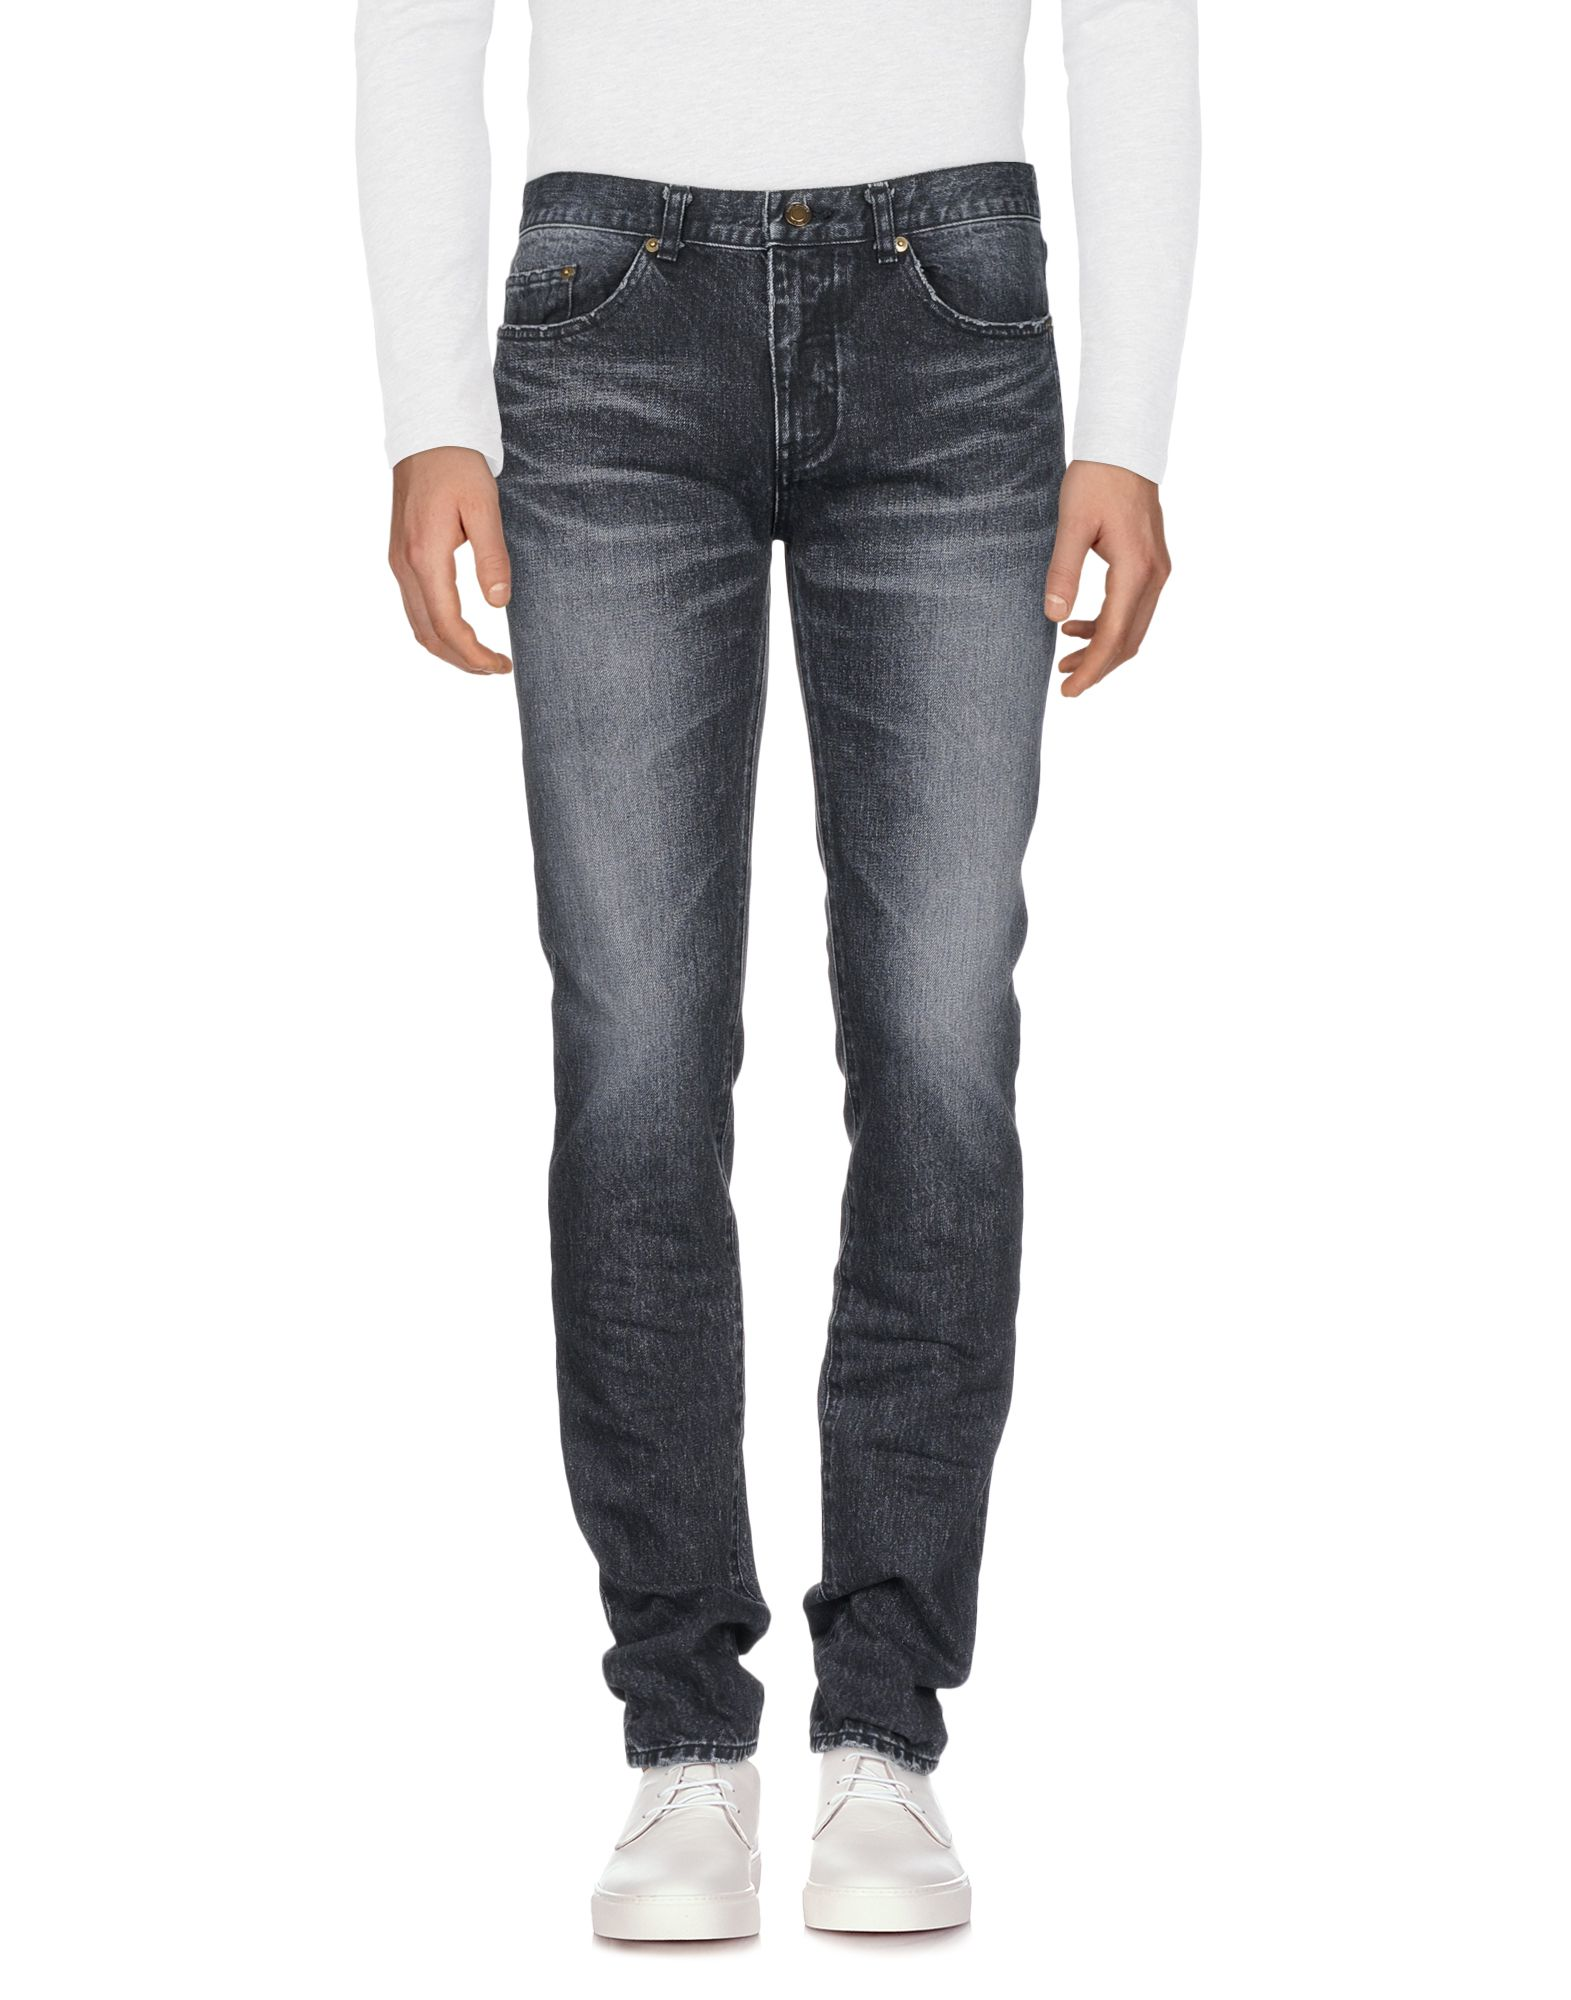 Pantaloni Jeans Saint Laurent Donna - Acquista online su